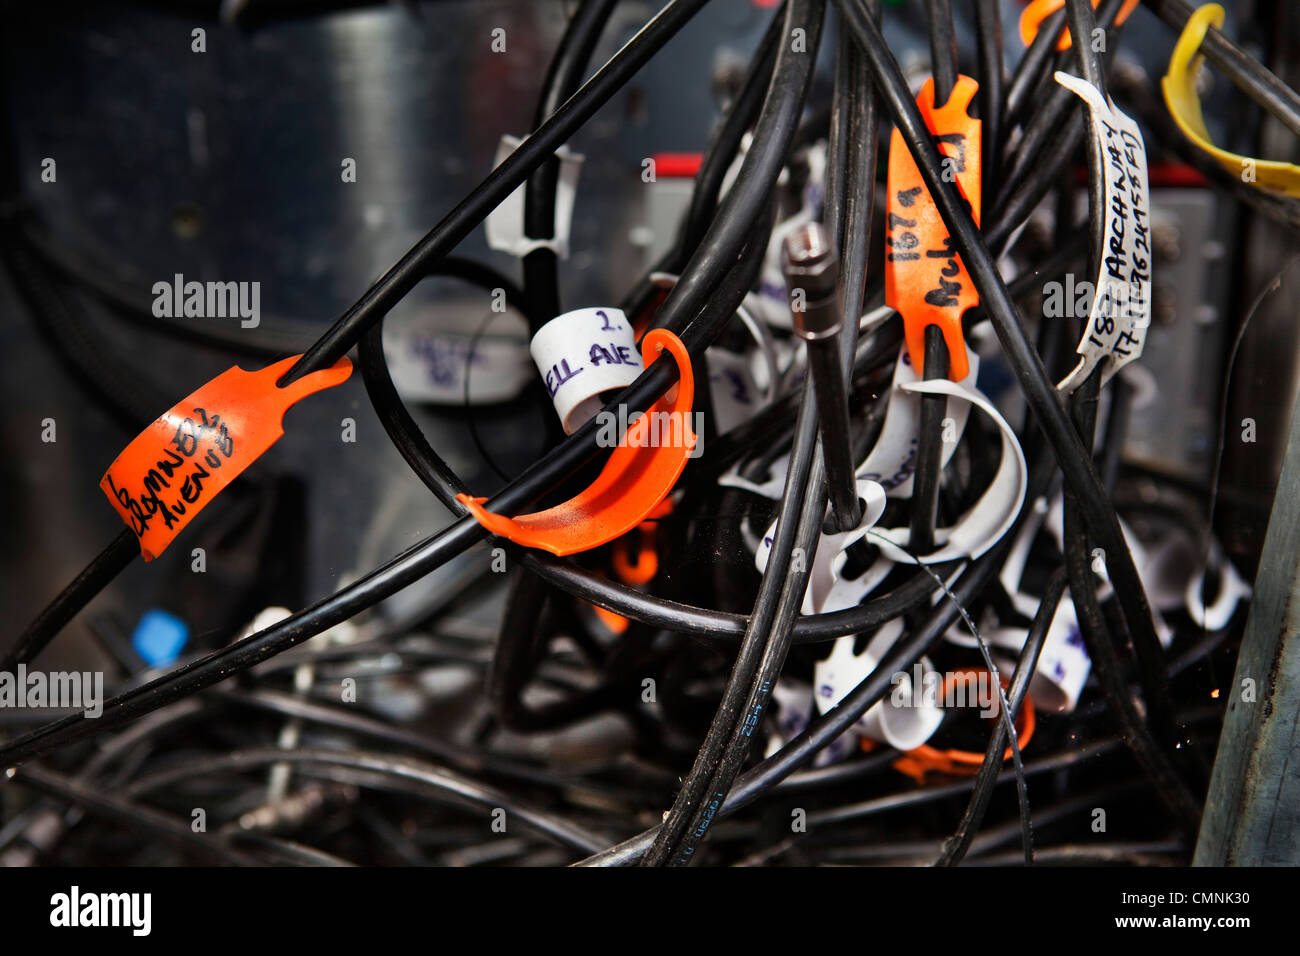 Wires in street junction box for cable TV. - Stock Image